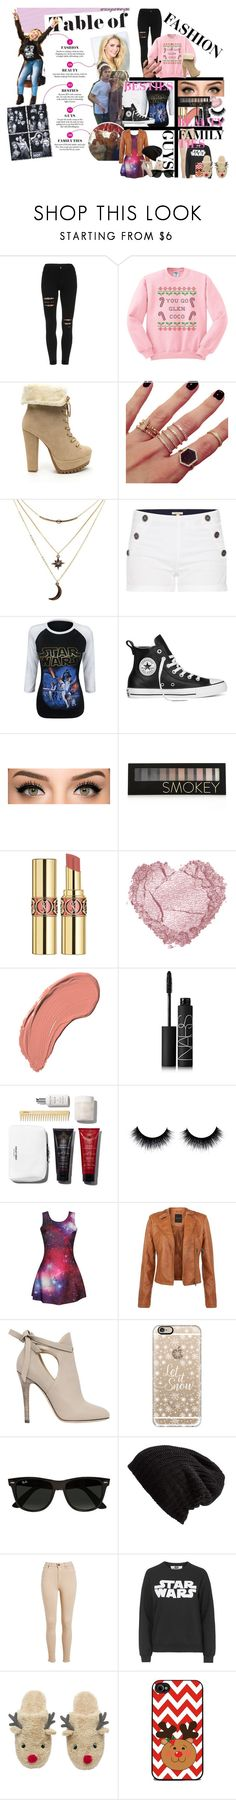 """"""""""" by reaganbalentyne ❤ liked on Polyvore featuring Melanie Auld, Charlotte Russe, Barbour, Converse, Forever 21, Yves Saint Laurent, NYX, NARS Cosmetics, Jimmy Choo and Casetify"""